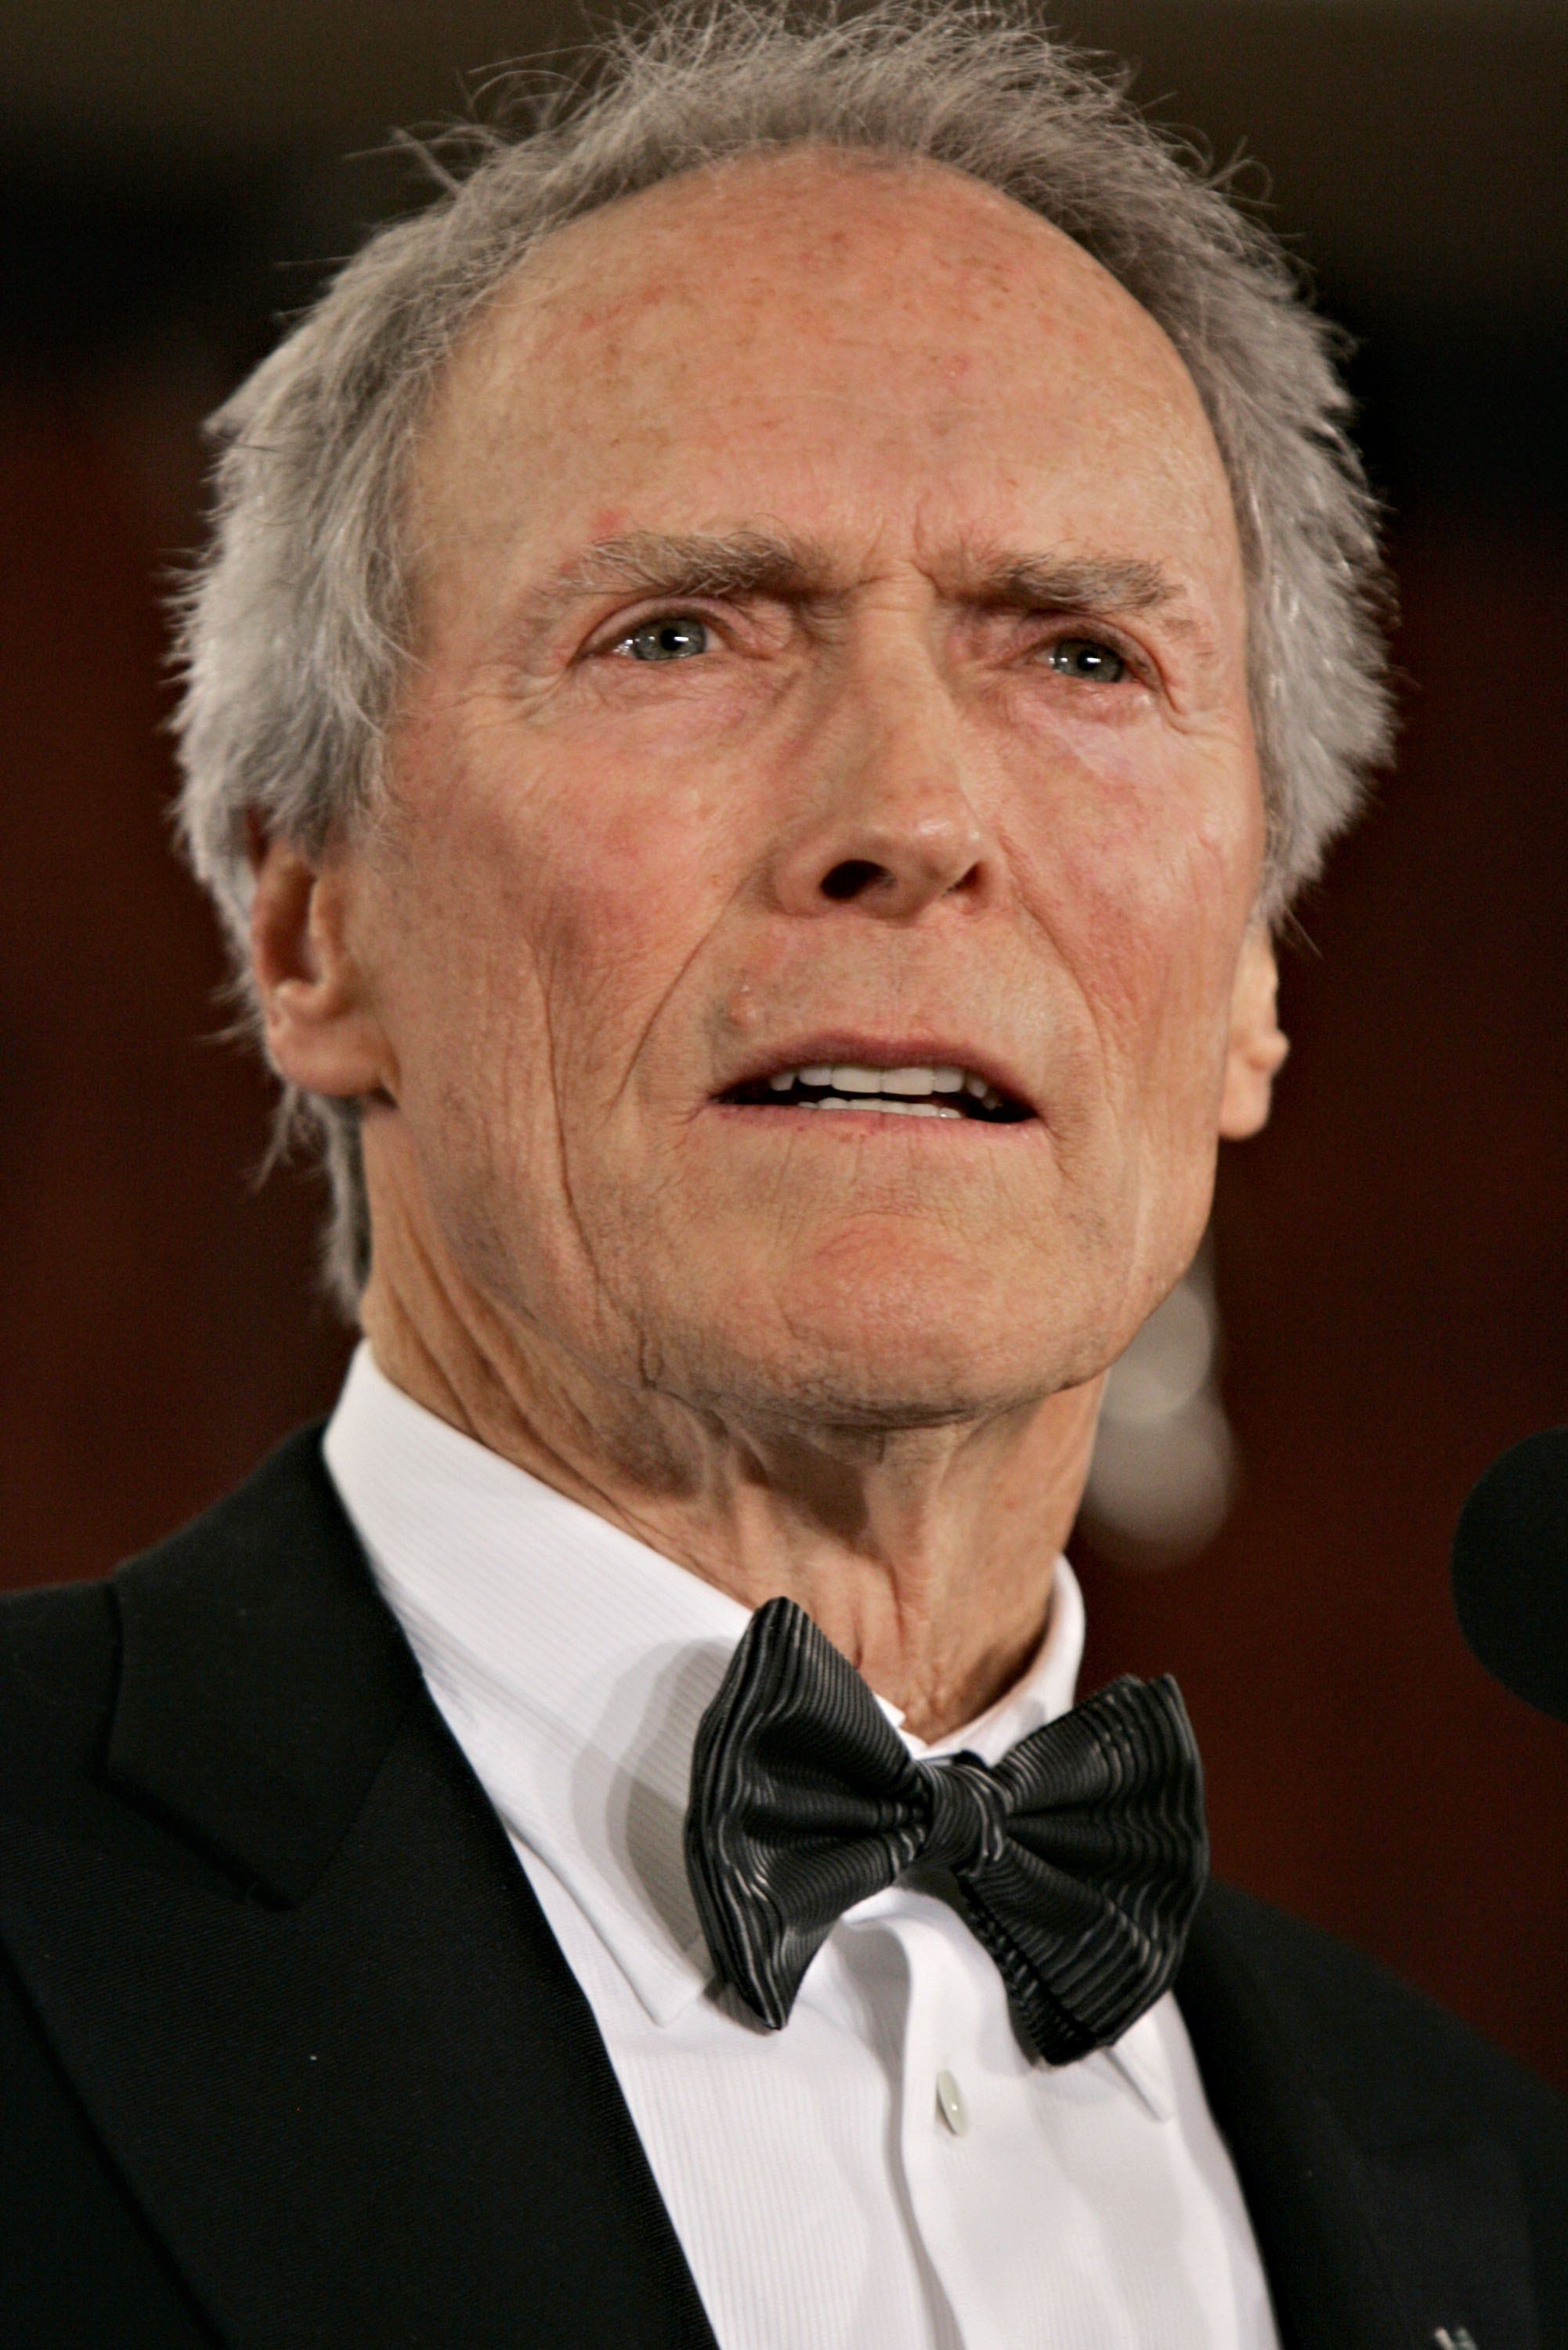 Clint Eastwood accepting his Lifetime Achievement Award during the 58th Annual Directors Guild Of America Awards on January 28, 2006, in Los Angeles, California   Photo: Kevin Winter/Getty Images